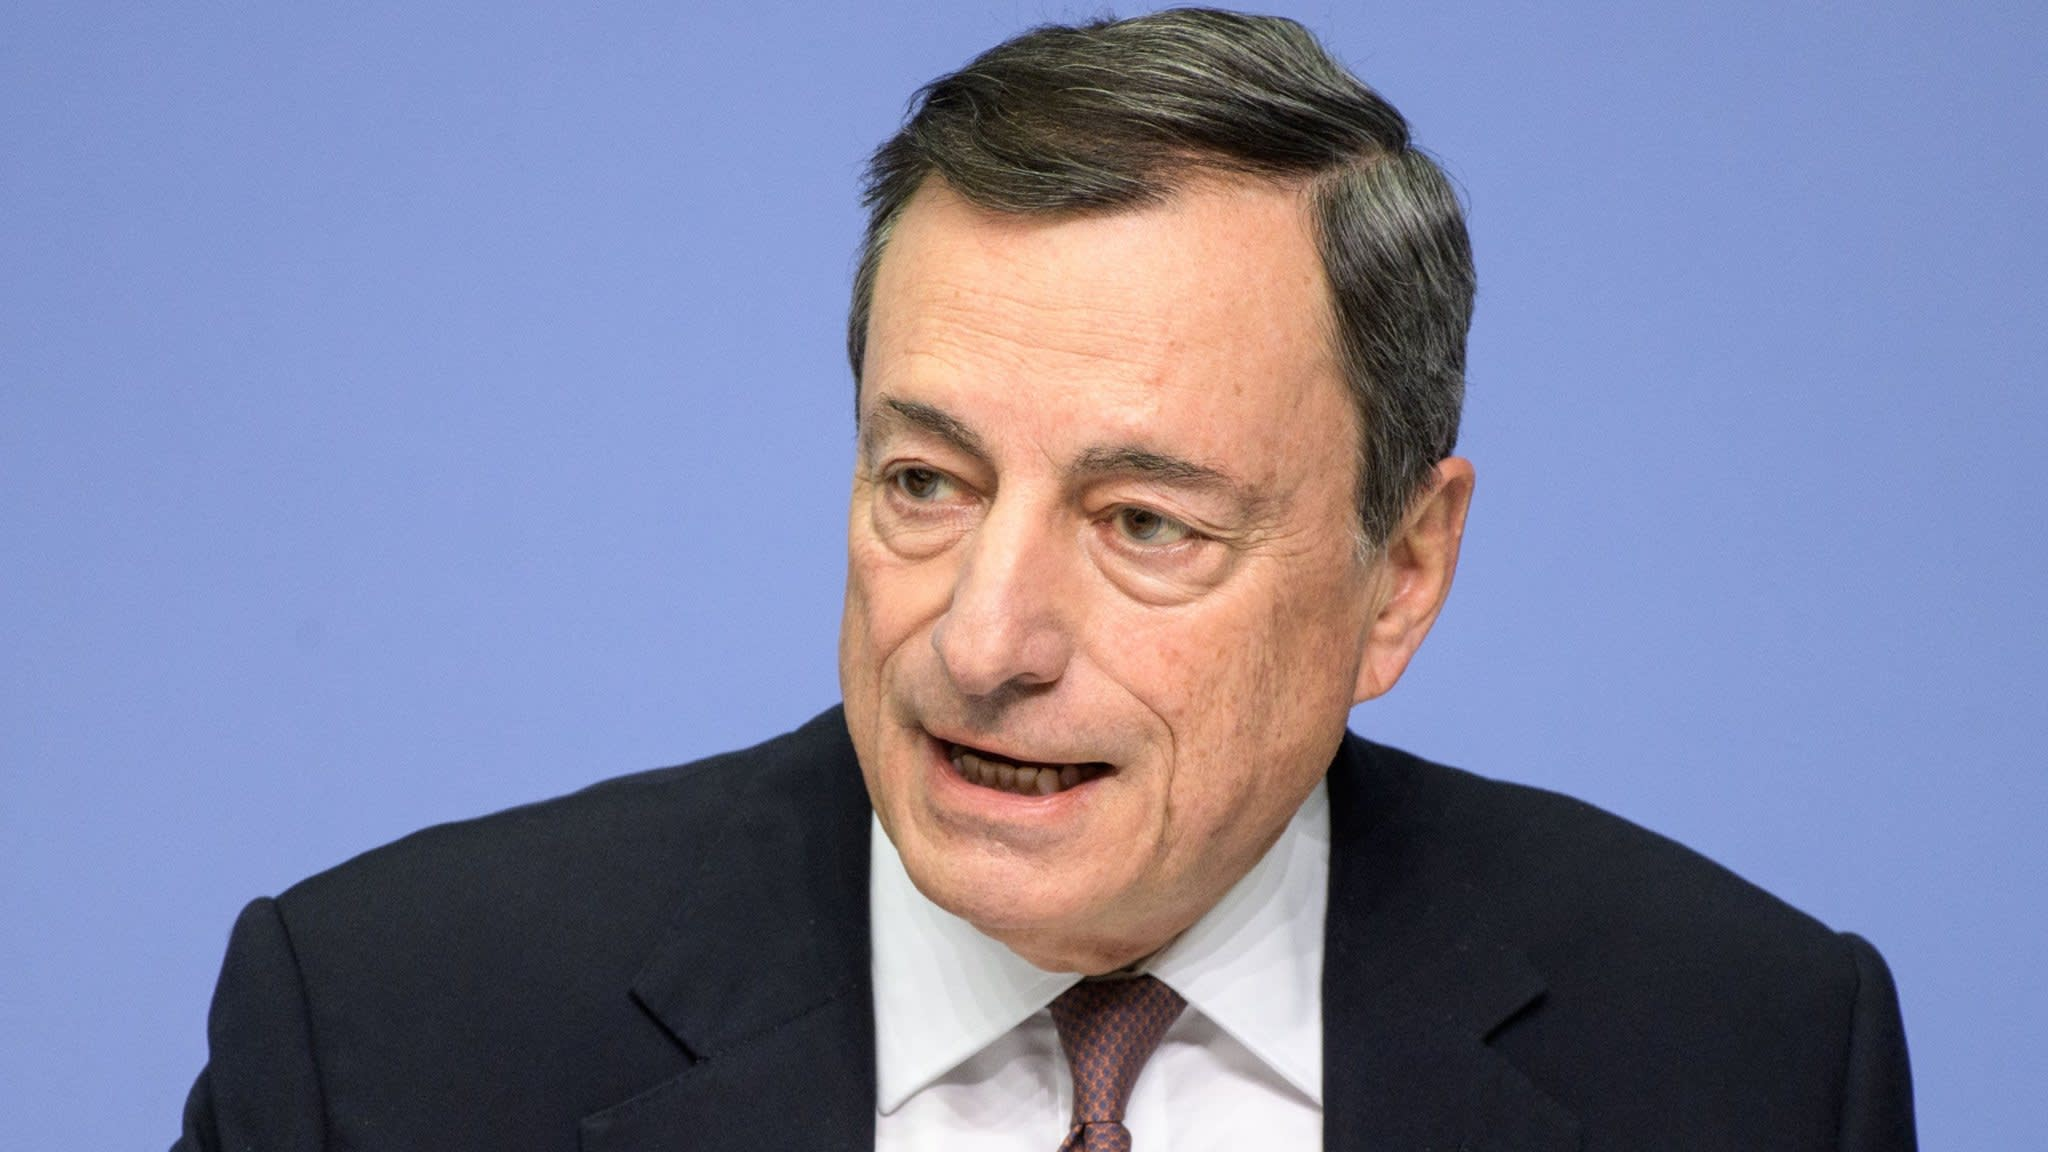 Draghi delivers bullish assessment of eurozone economic prospects